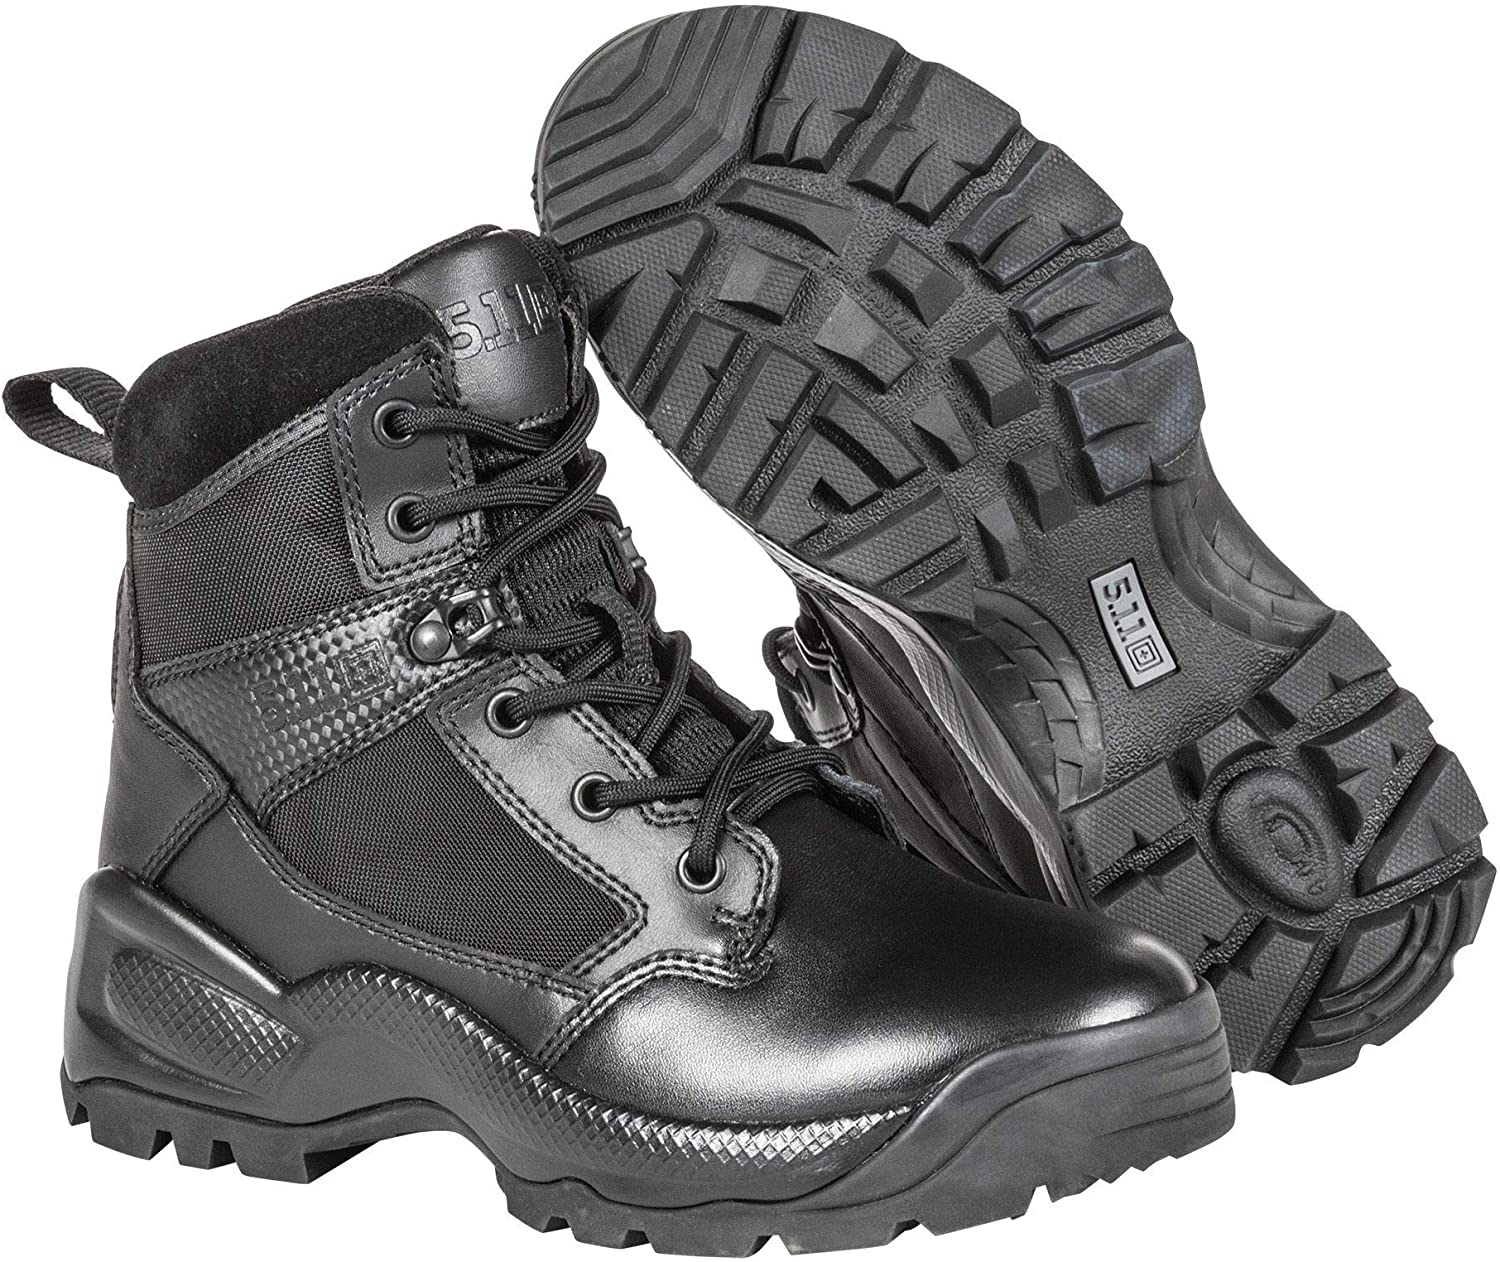 5.11 Women's ATAC 2.0 Tactical Side Zip Military Combat Boots for Paramedics.